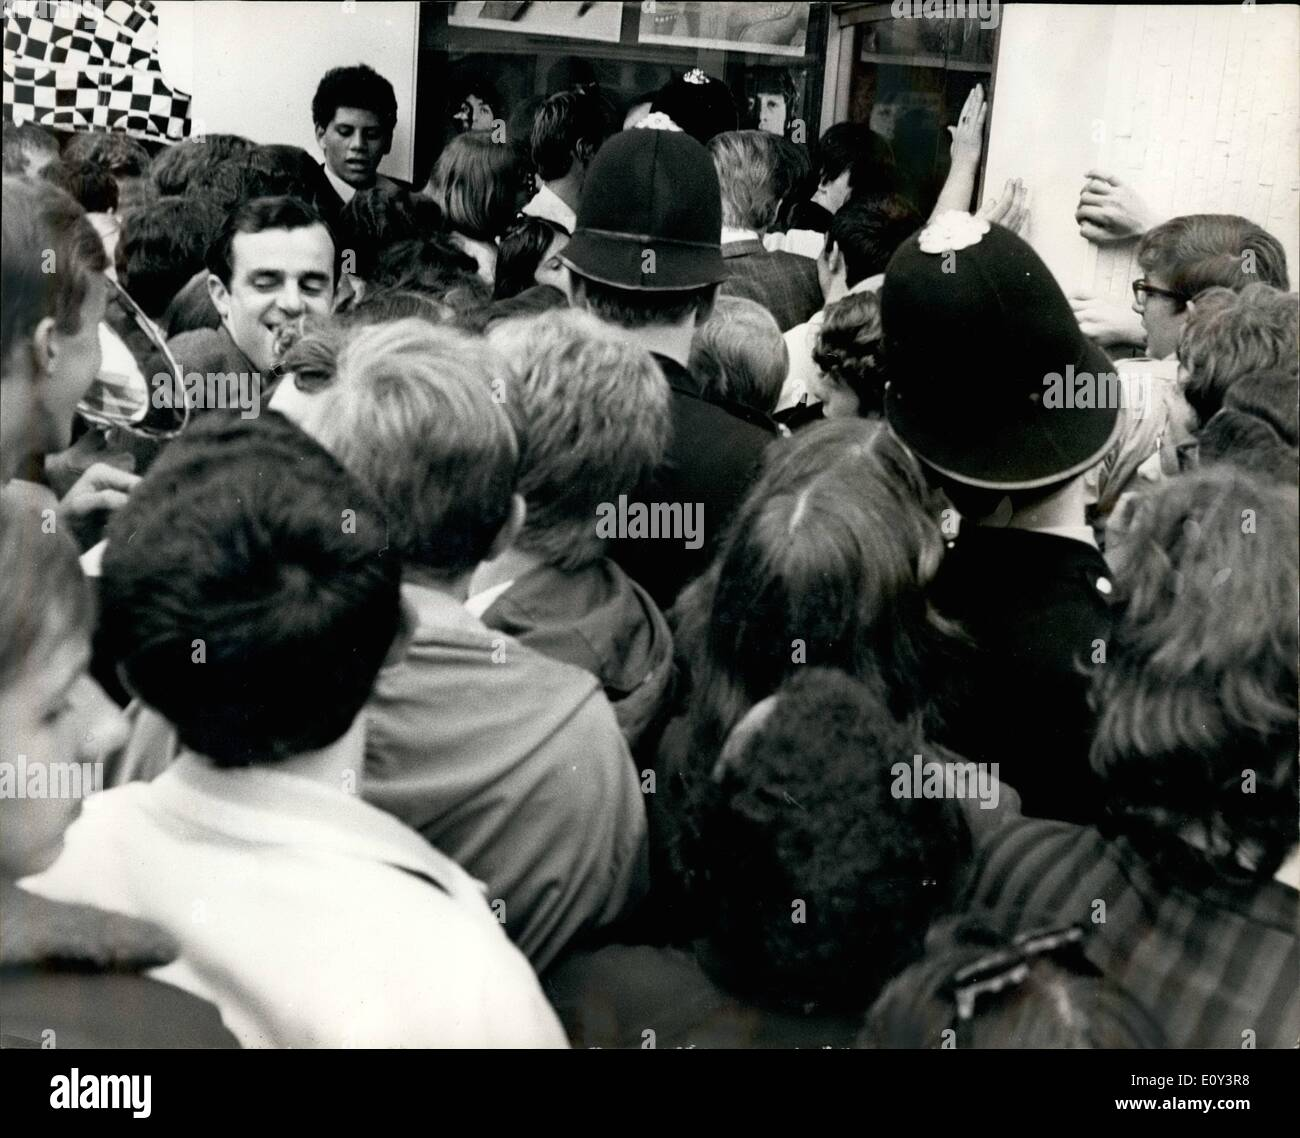 Jul. 07, 1968 - The Beatles give away £10,000-worth of stock from their boutique ''Apple'' in London.: The Beatles have declined that they are ''tired of being shopkeepers'' and yesterday ordered that the thousands of pounds worth of stock in their boutique ''Apple'', in Backer Street, London, should be given away without paying a penny. Hundreds of teenage costumers were outside the shop this morning waiting for it to open so that they could take their pick from the off-beat clothes - Stock Image